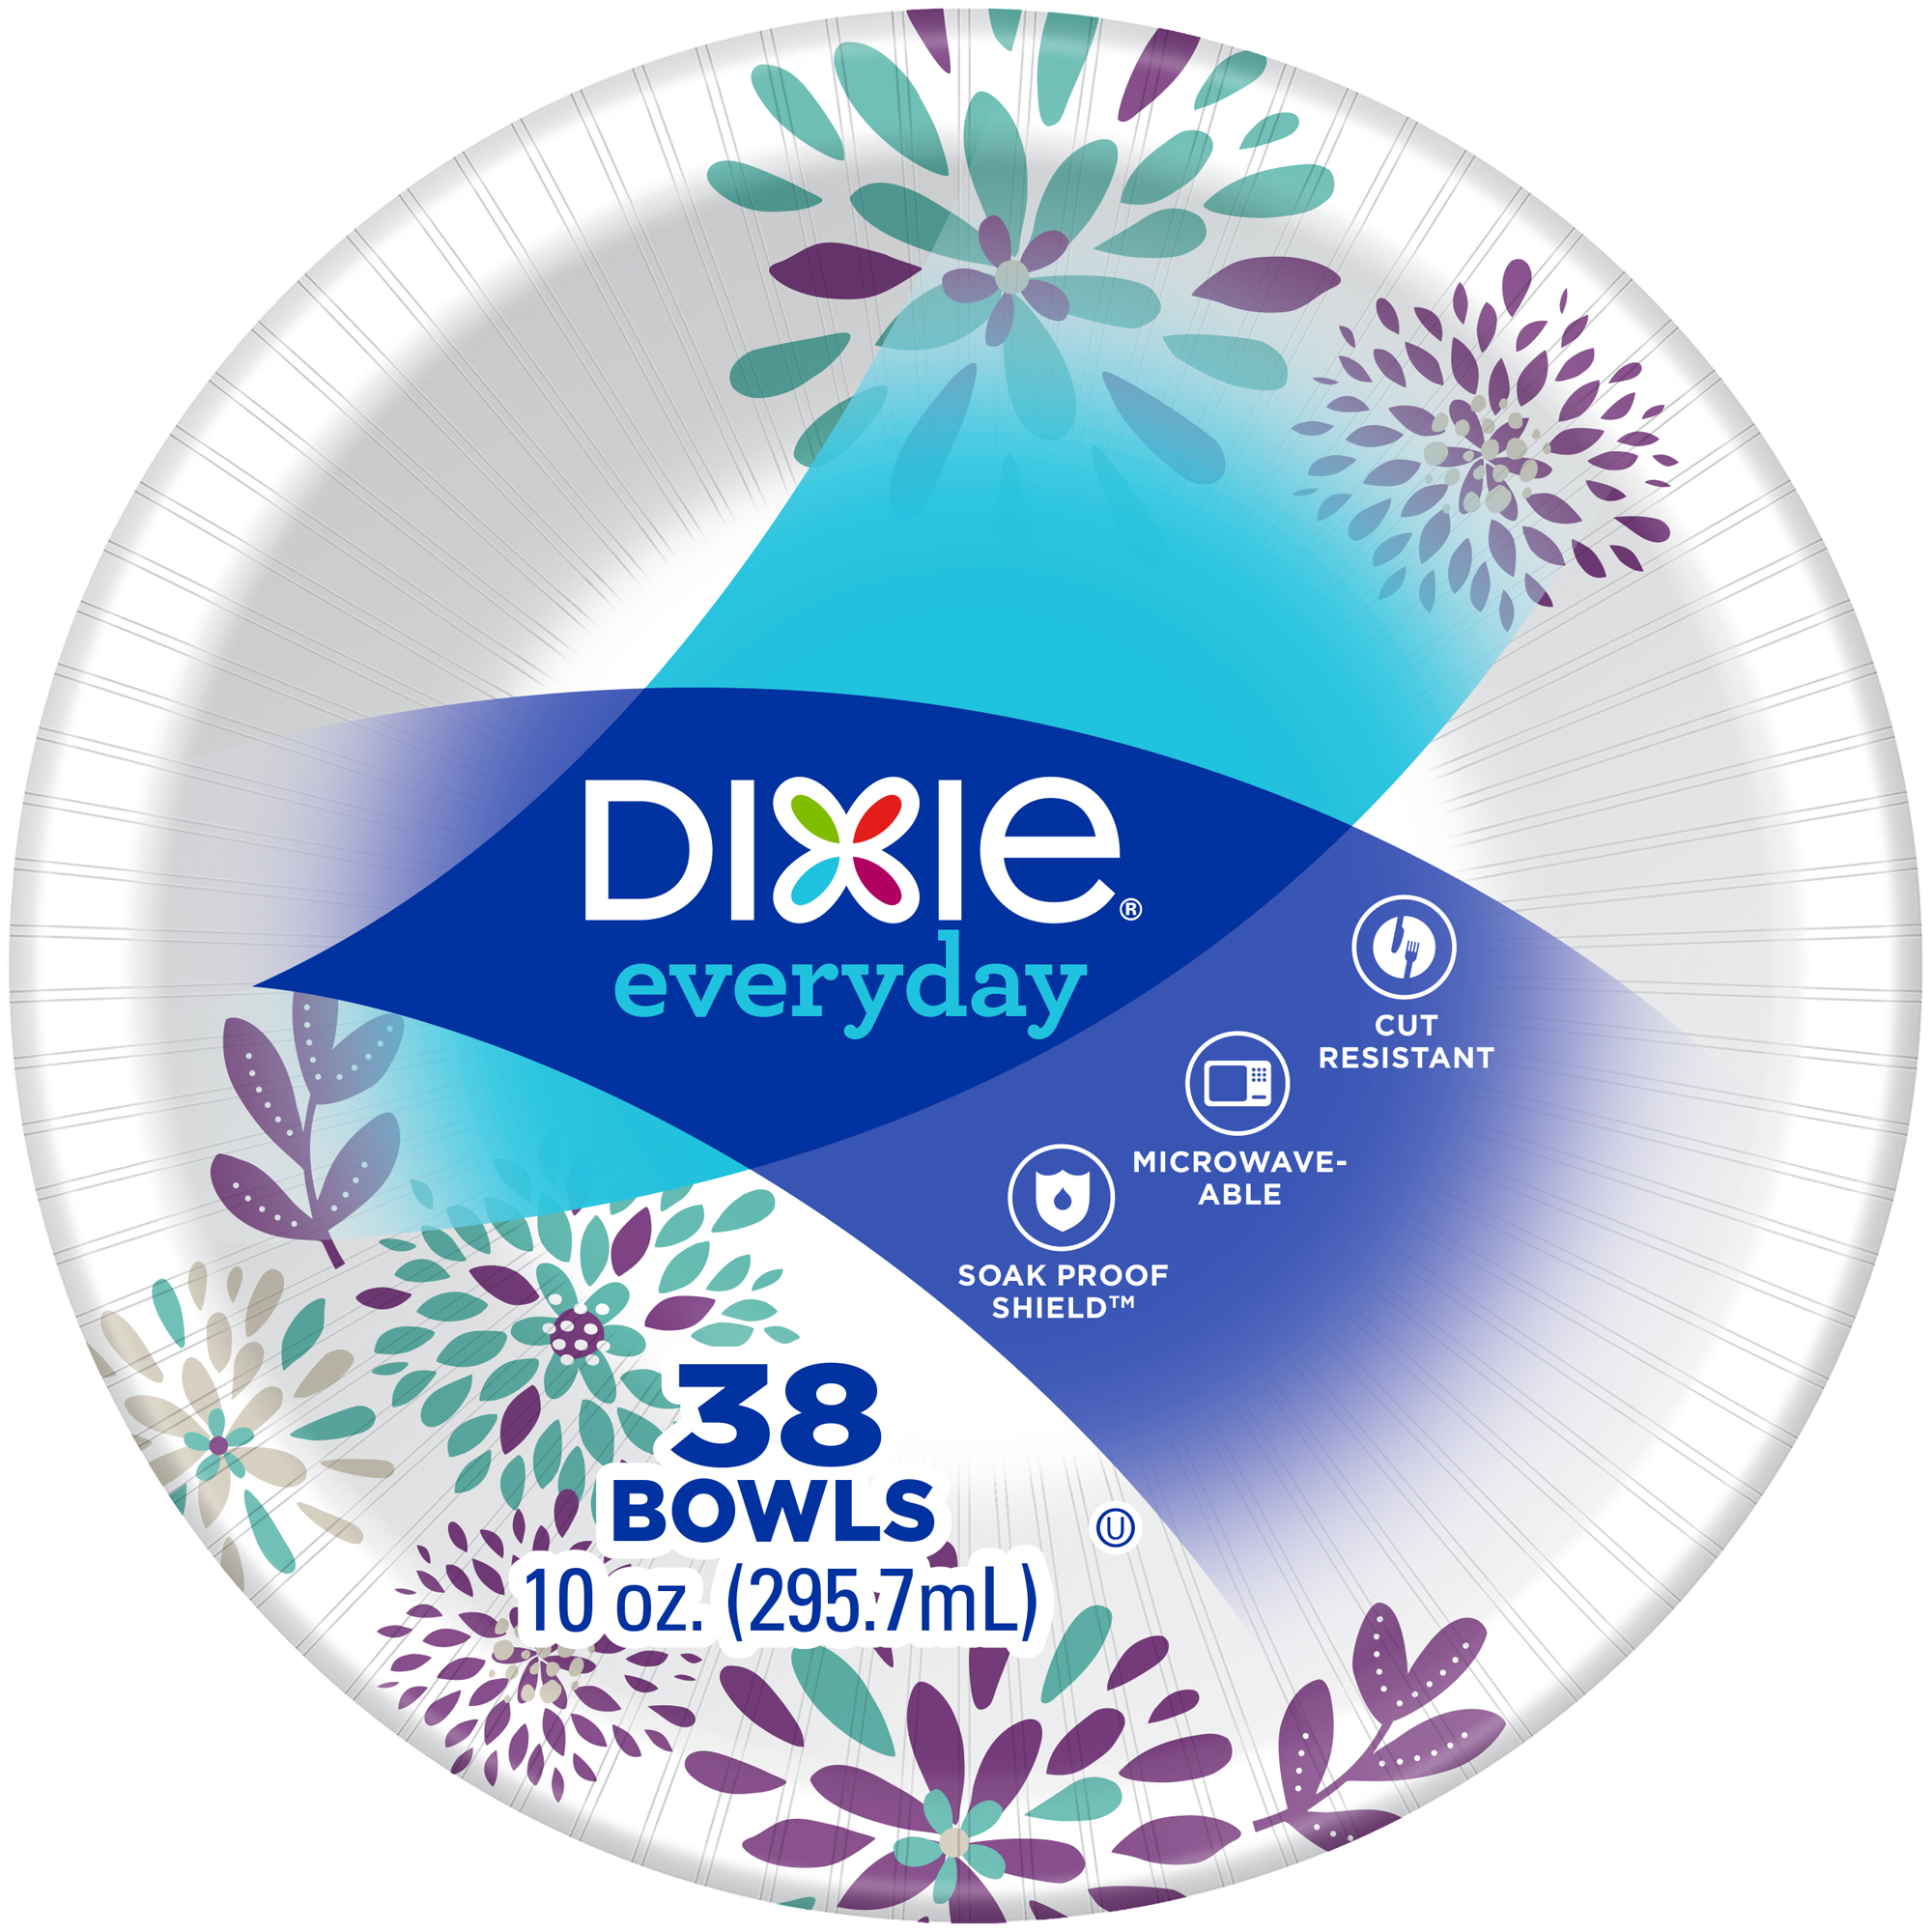 Dixie Everyday Paper Bowls, 10 Oz, 38 Count